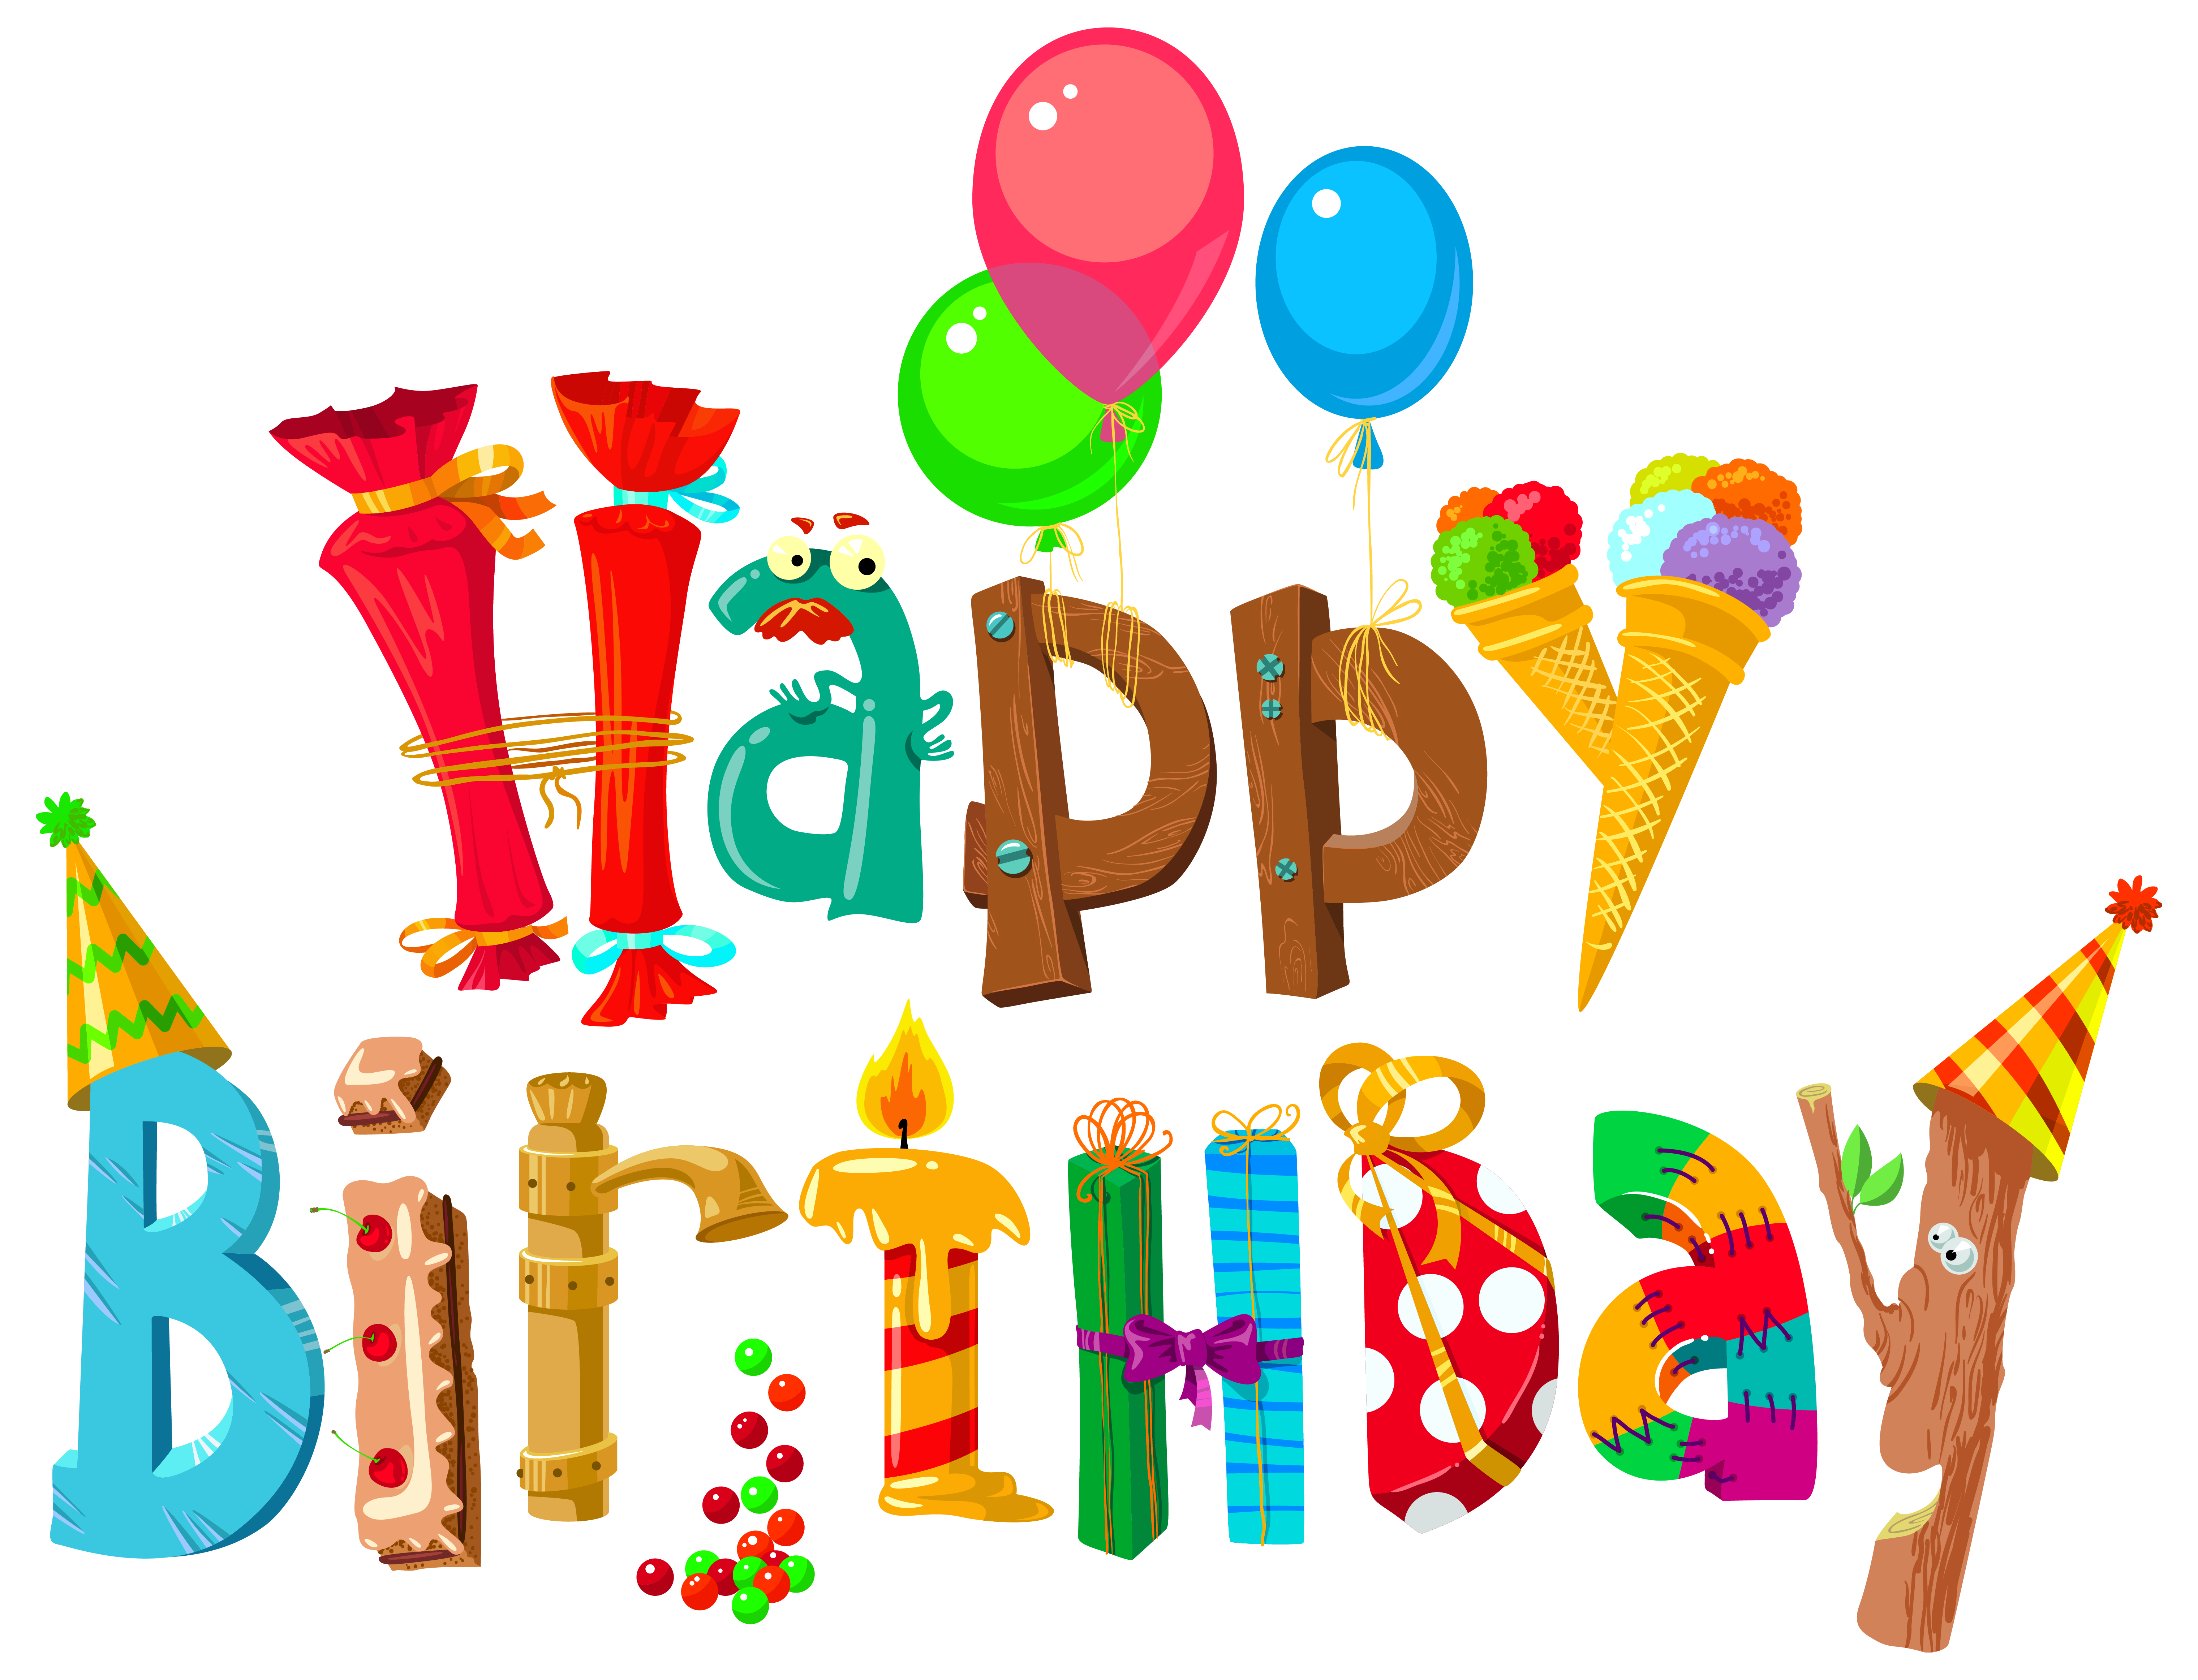 Happy birthday grandma png. Funny clipart image gallery